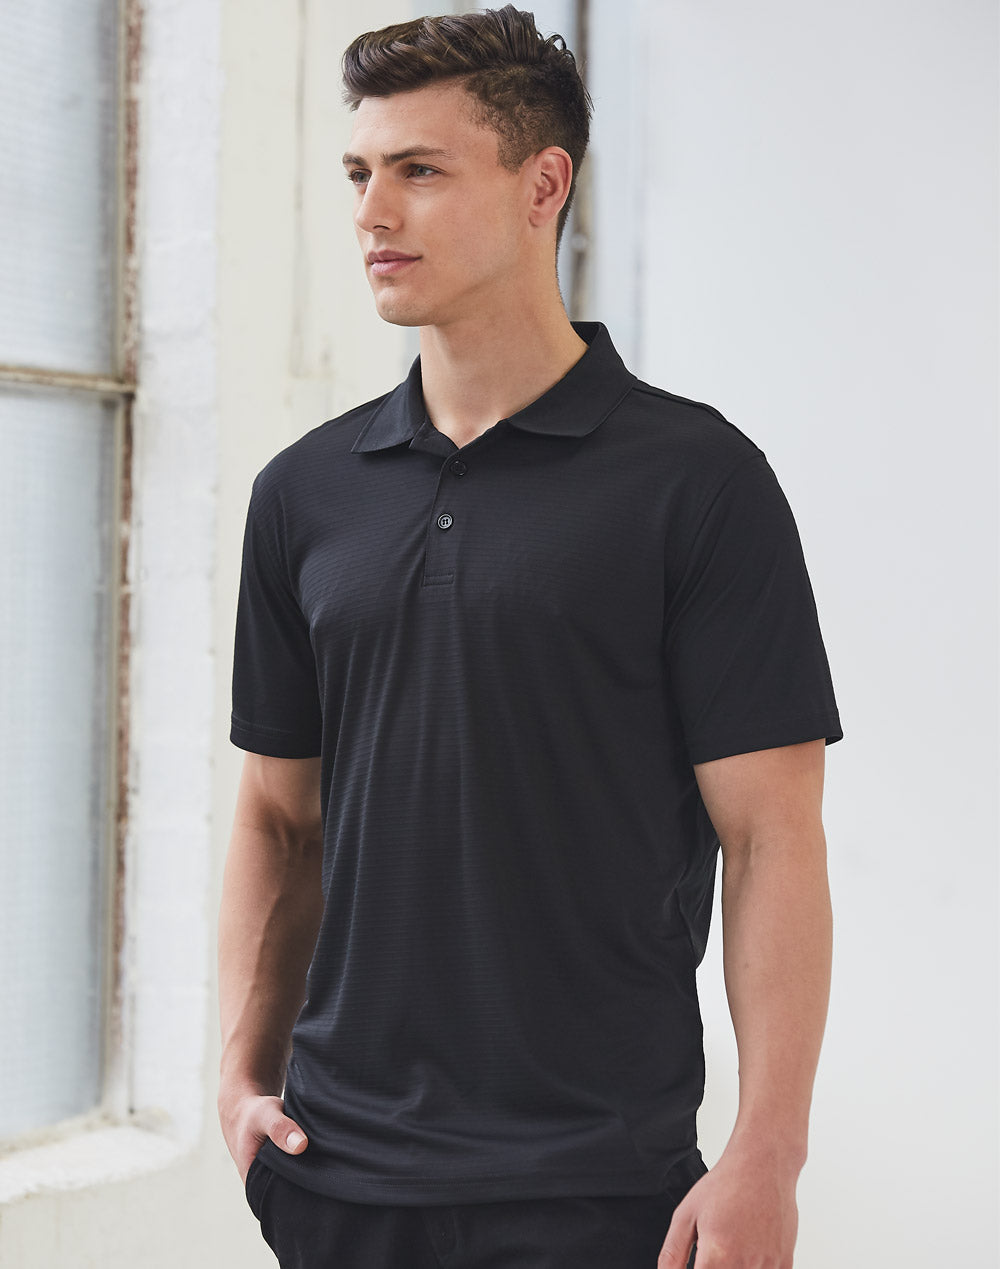 Icon Polo Mens (pack of 5) - PS75-PK5